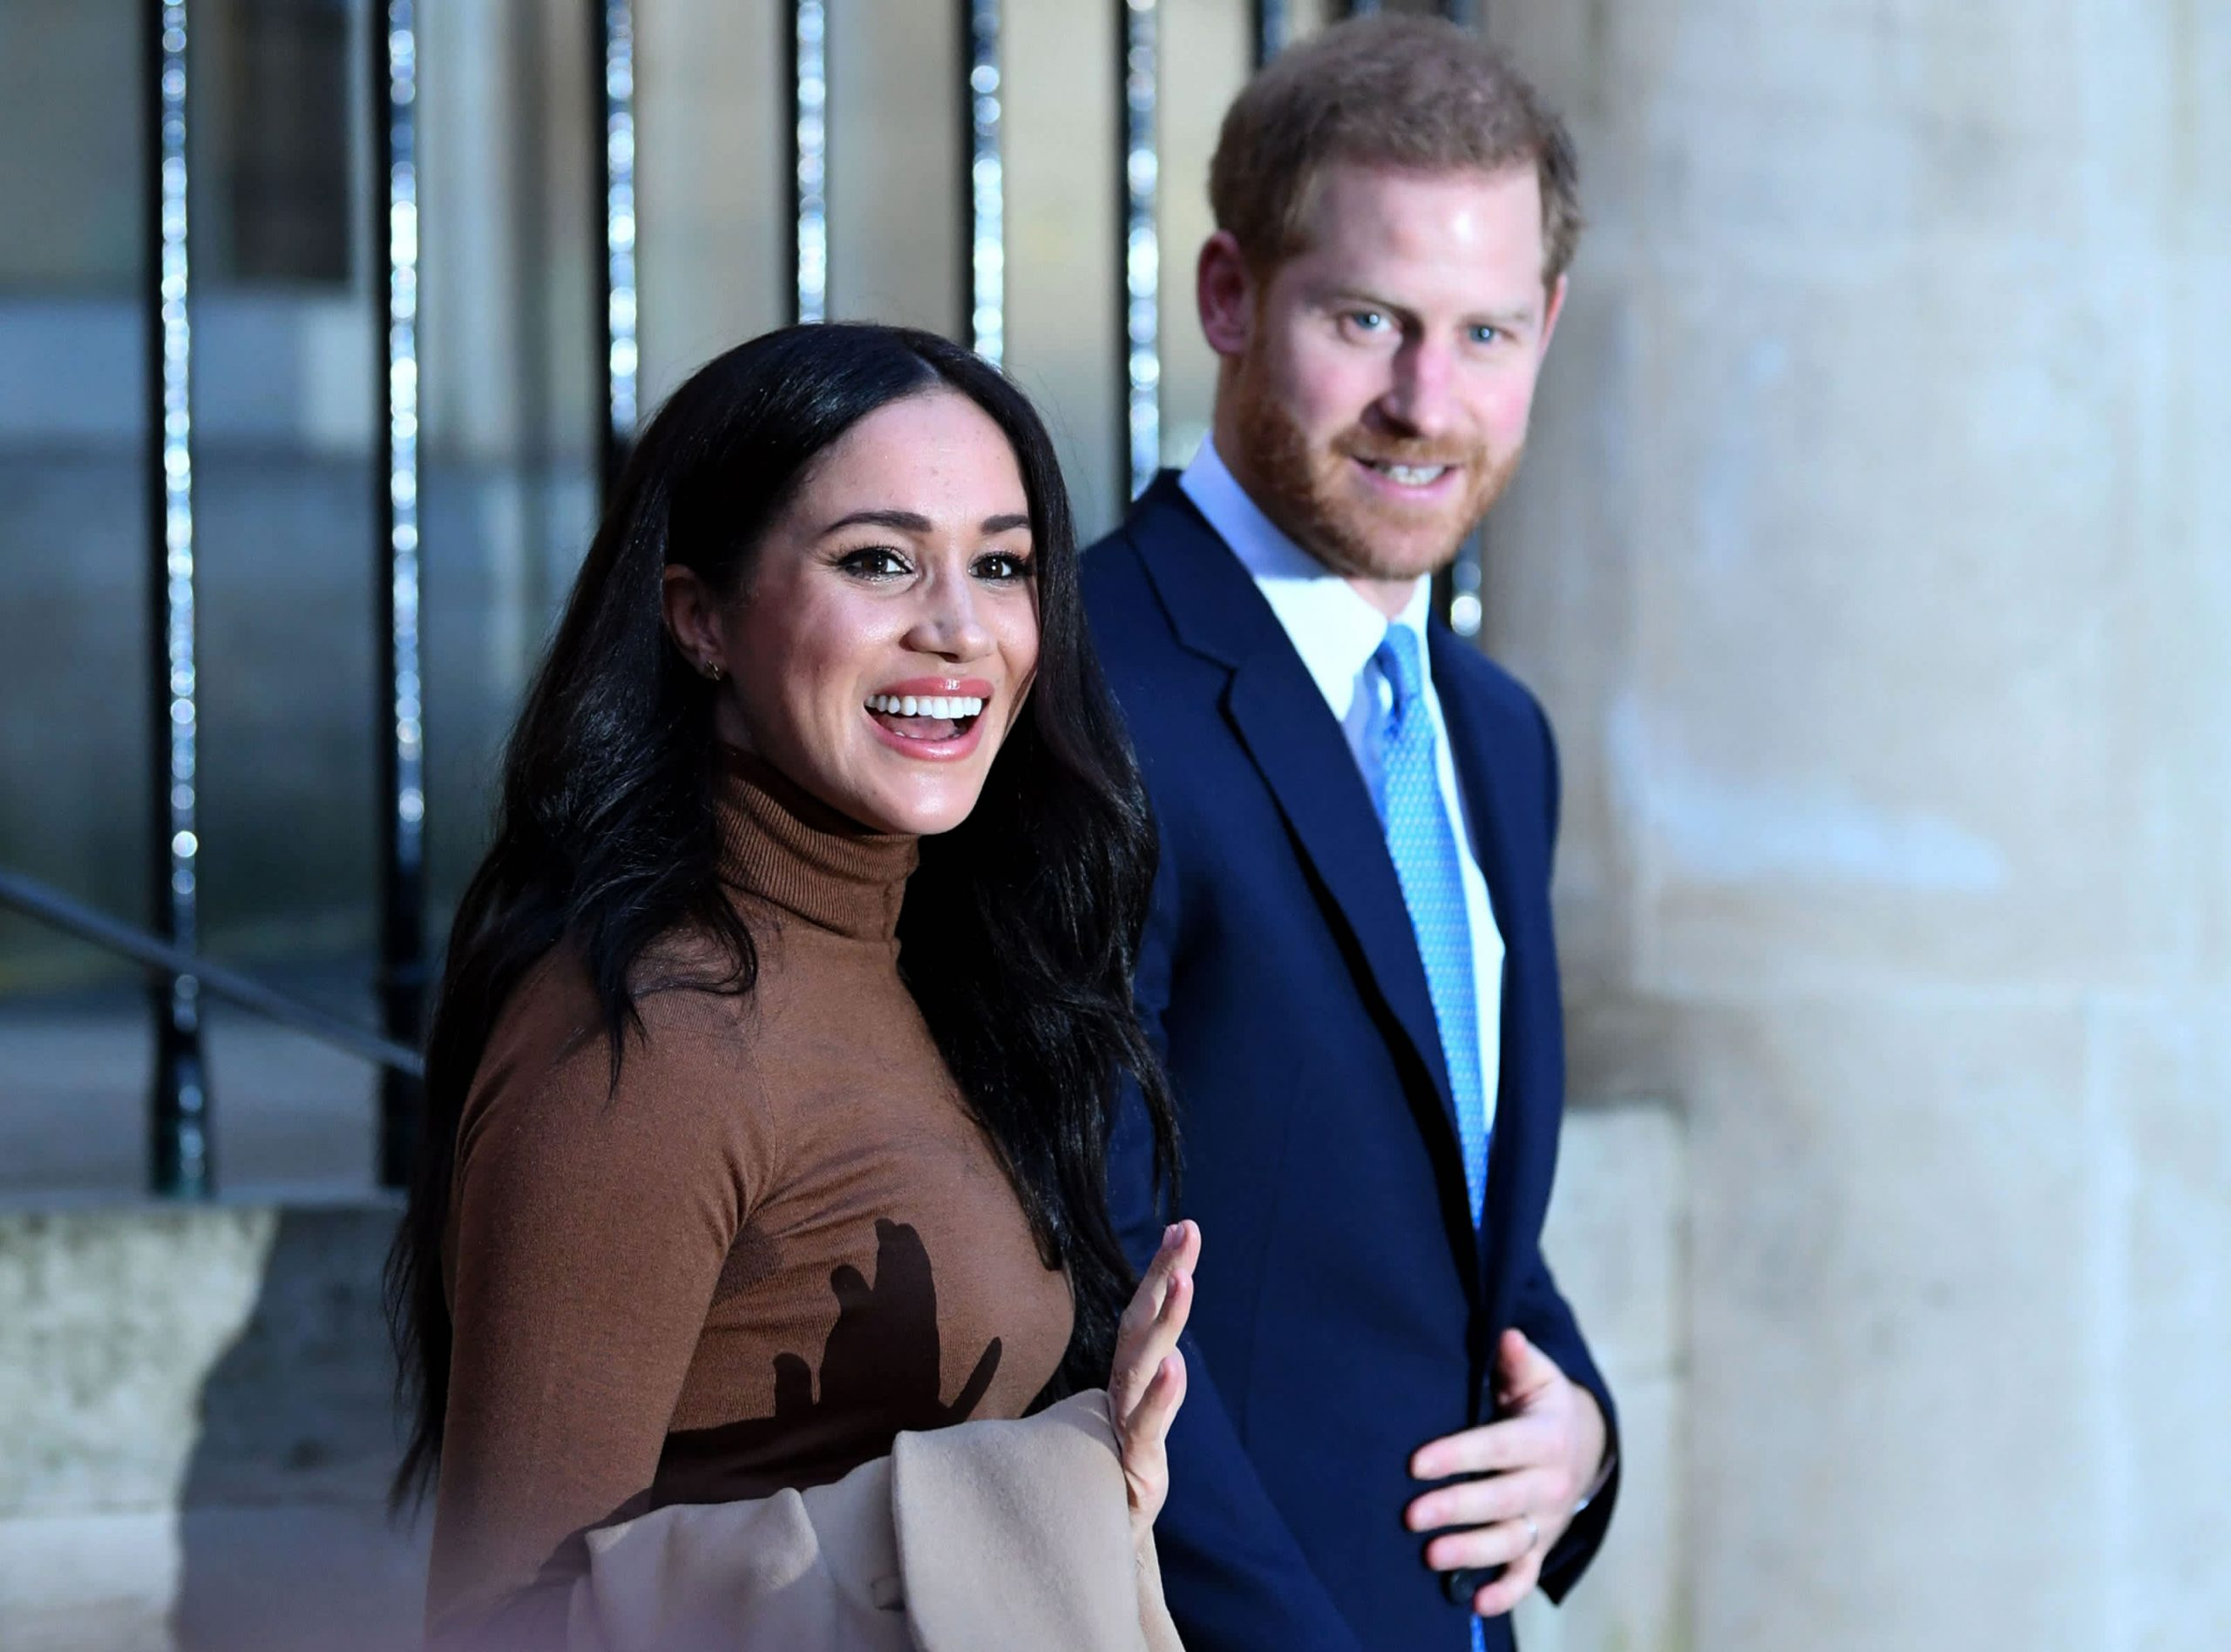 Prince Harry and Meghan will produce and host podcasts for Spotify, starting with a holiday special in December